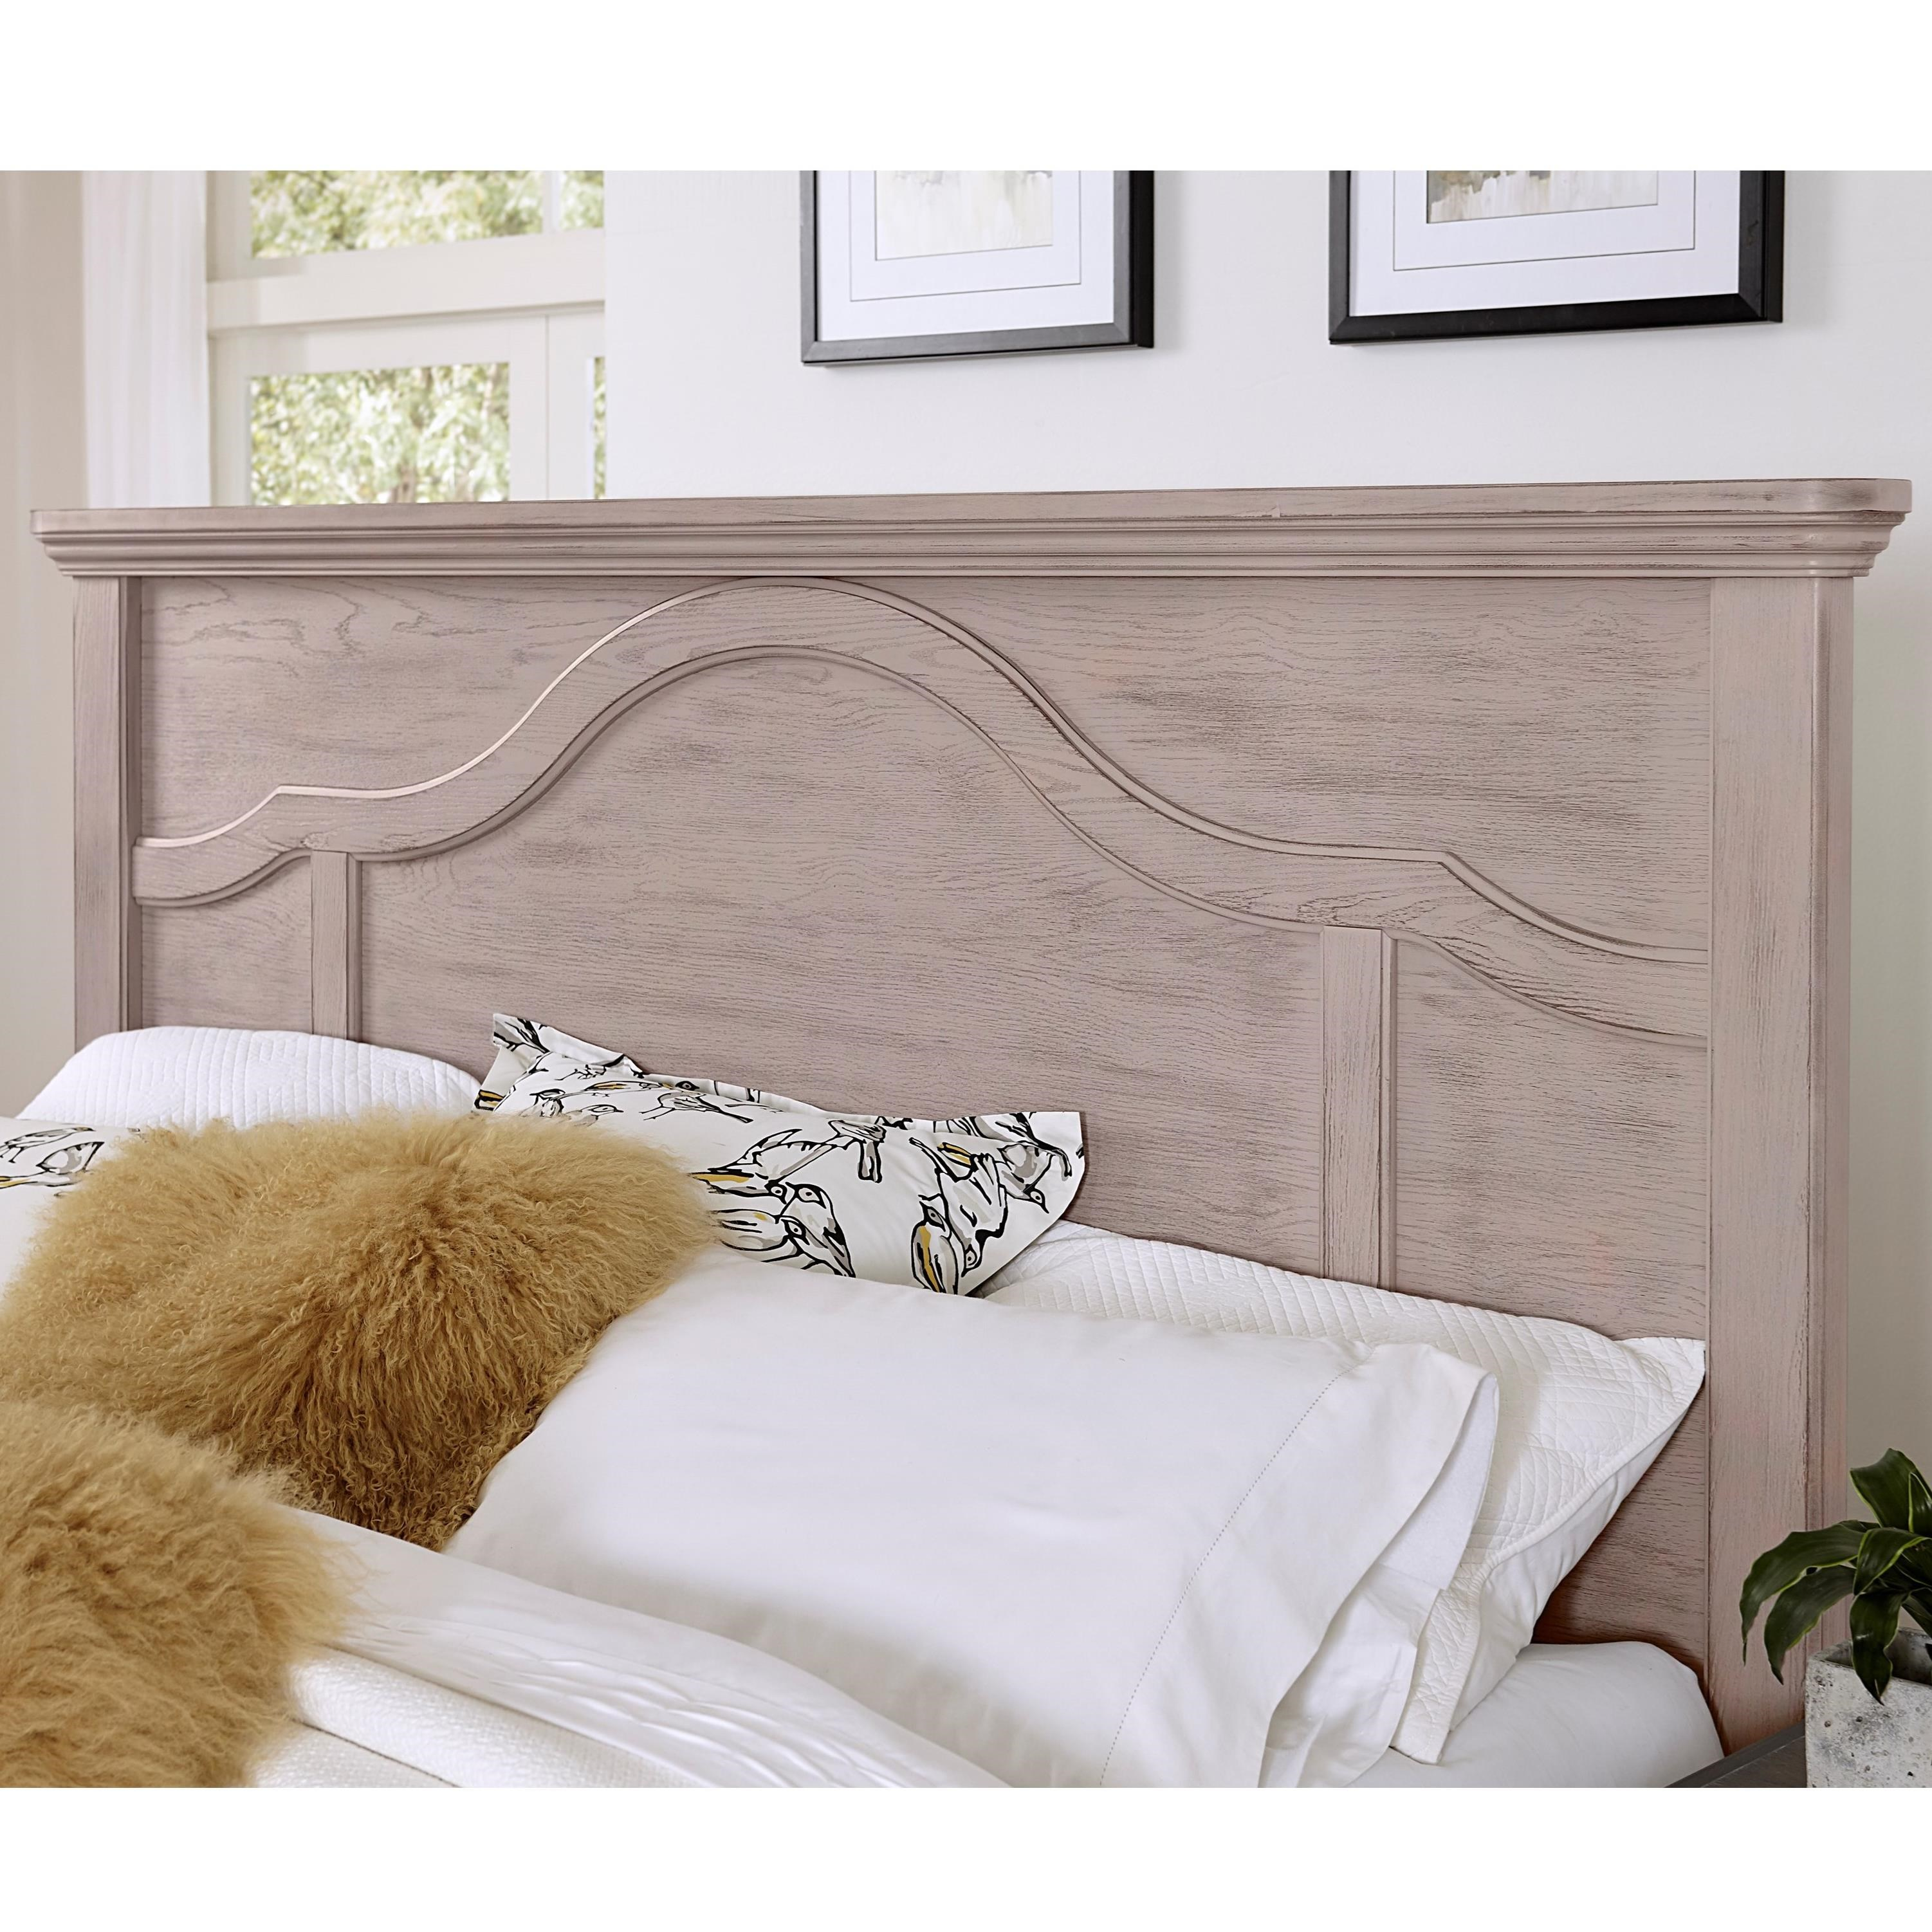 Bungalow Queen Mantel Headboard by Laurel Mercantile Co. at Darvin Furniture